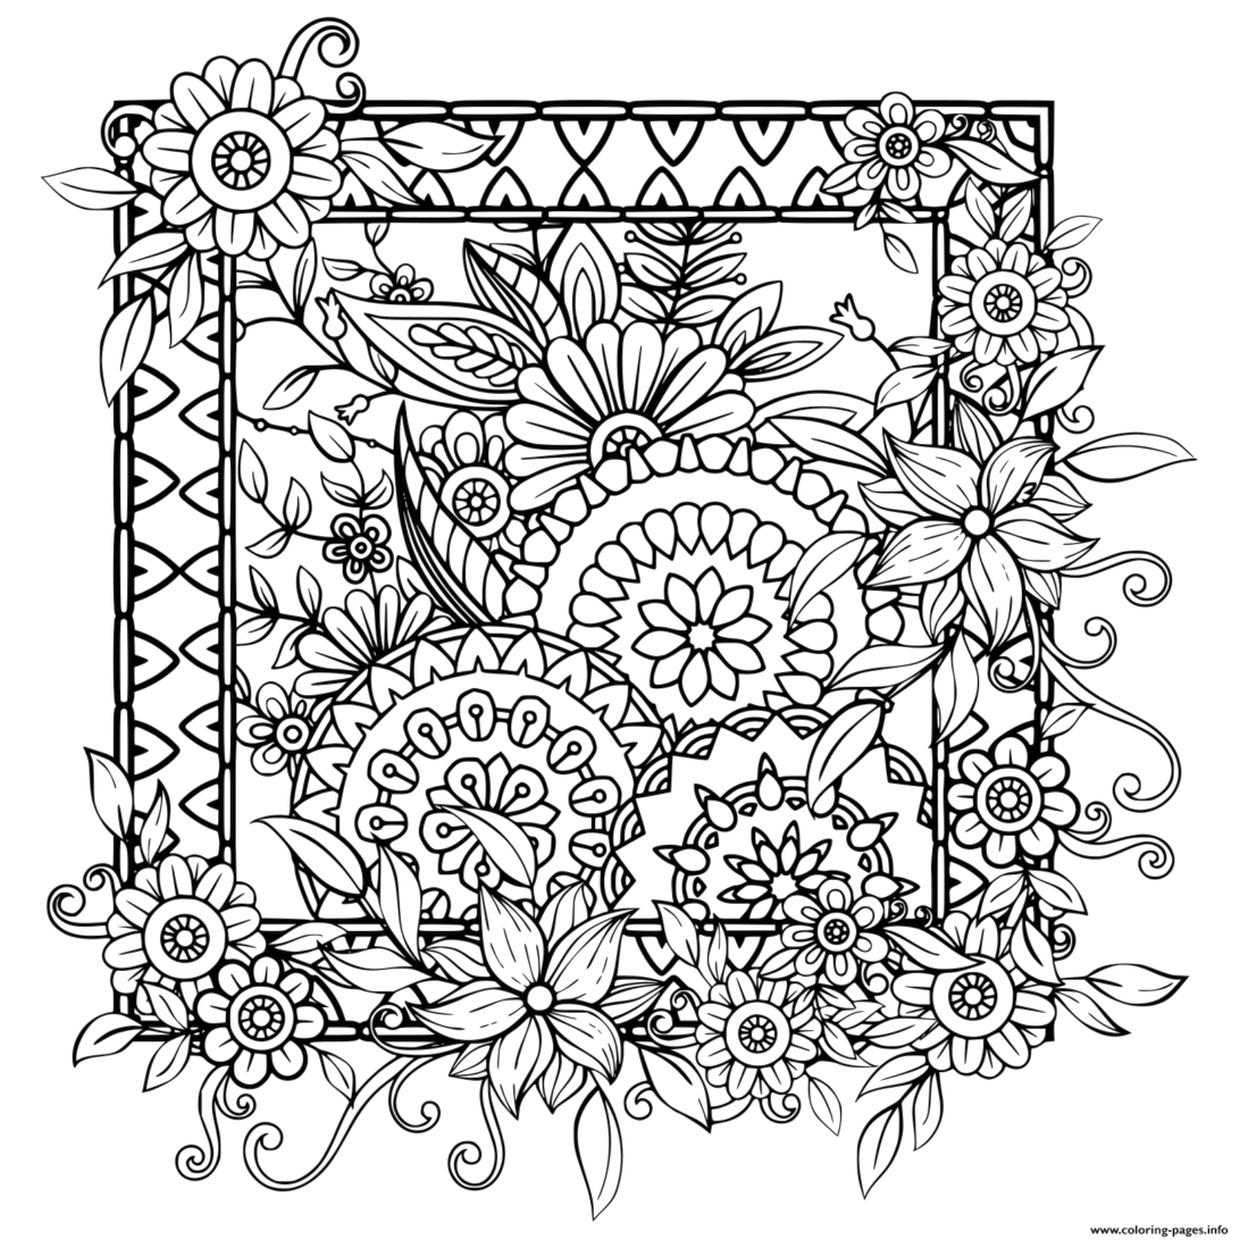 coloring pages for adults patterns floral coloring pages for adults best coloring pages for pages for coloring patterns adults